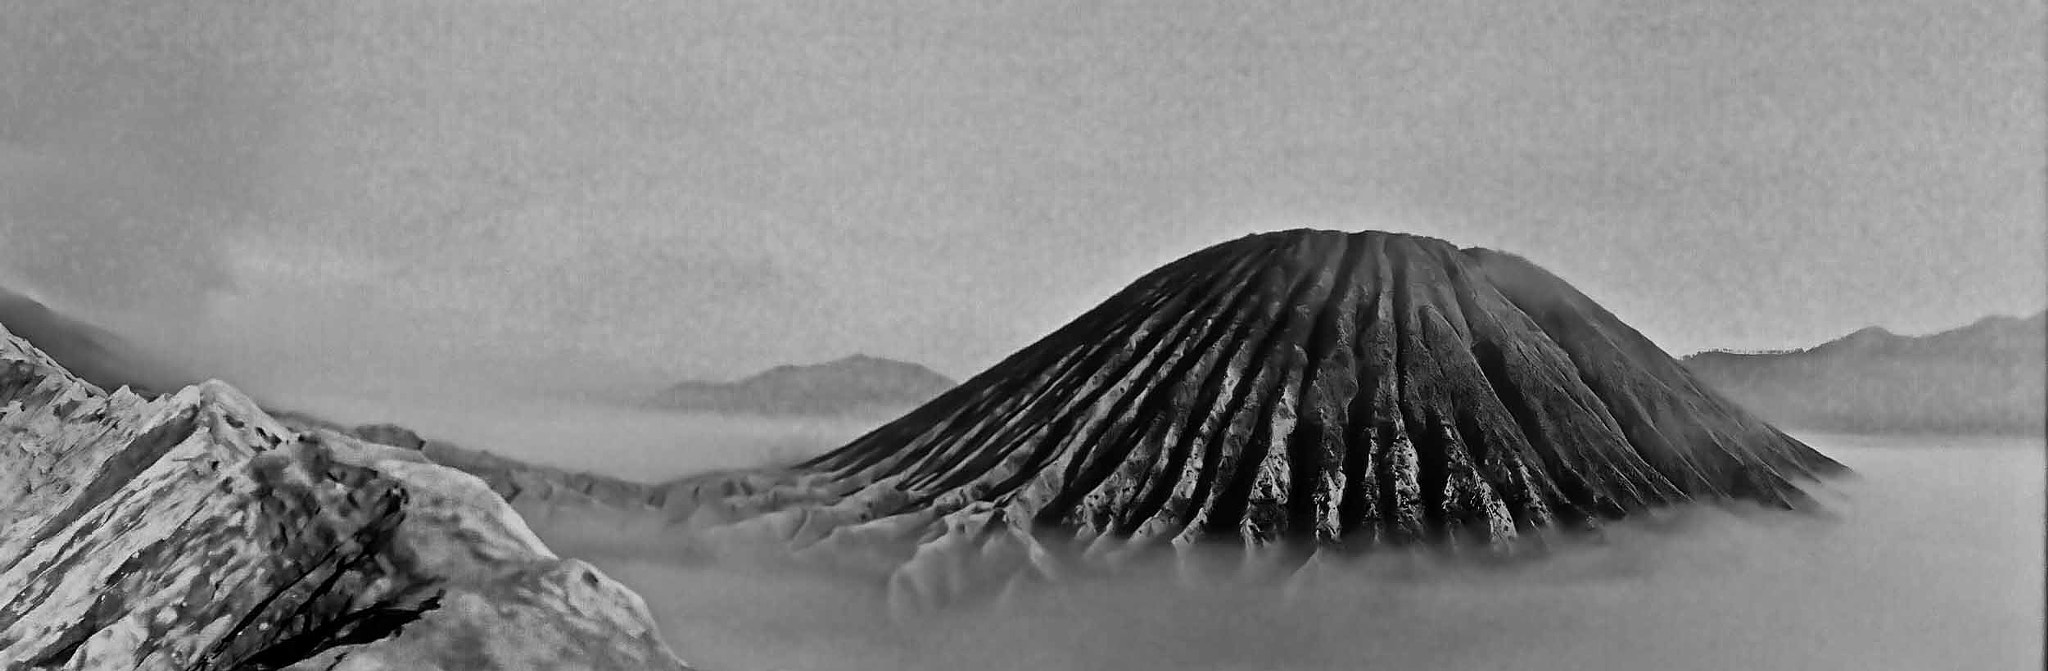 Photograph mount bromo moonscape by Paul Cowell on 500px